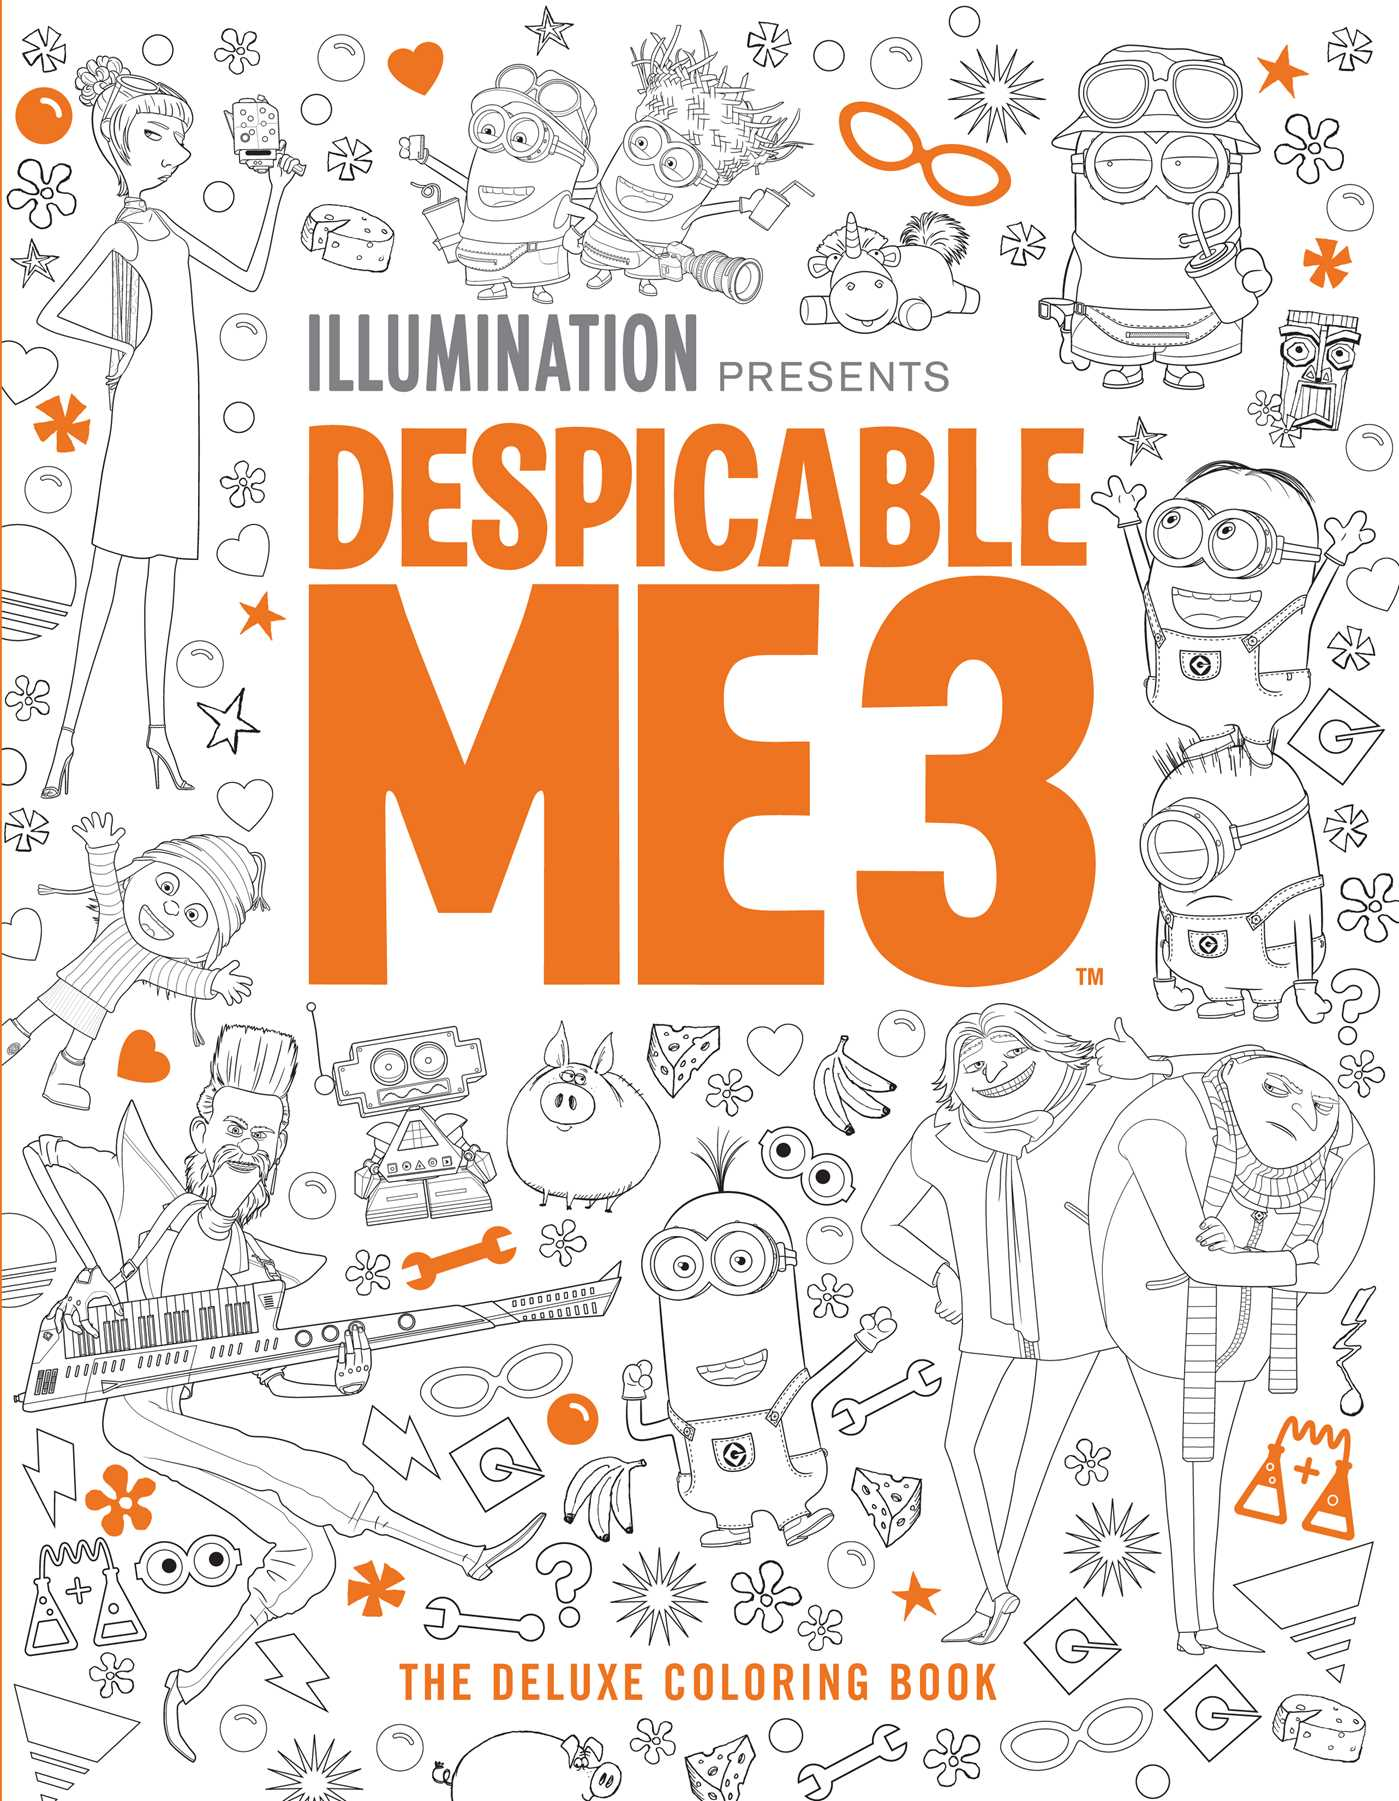 Despicable me 3 the deluxe coloring book 9781683830801 hr